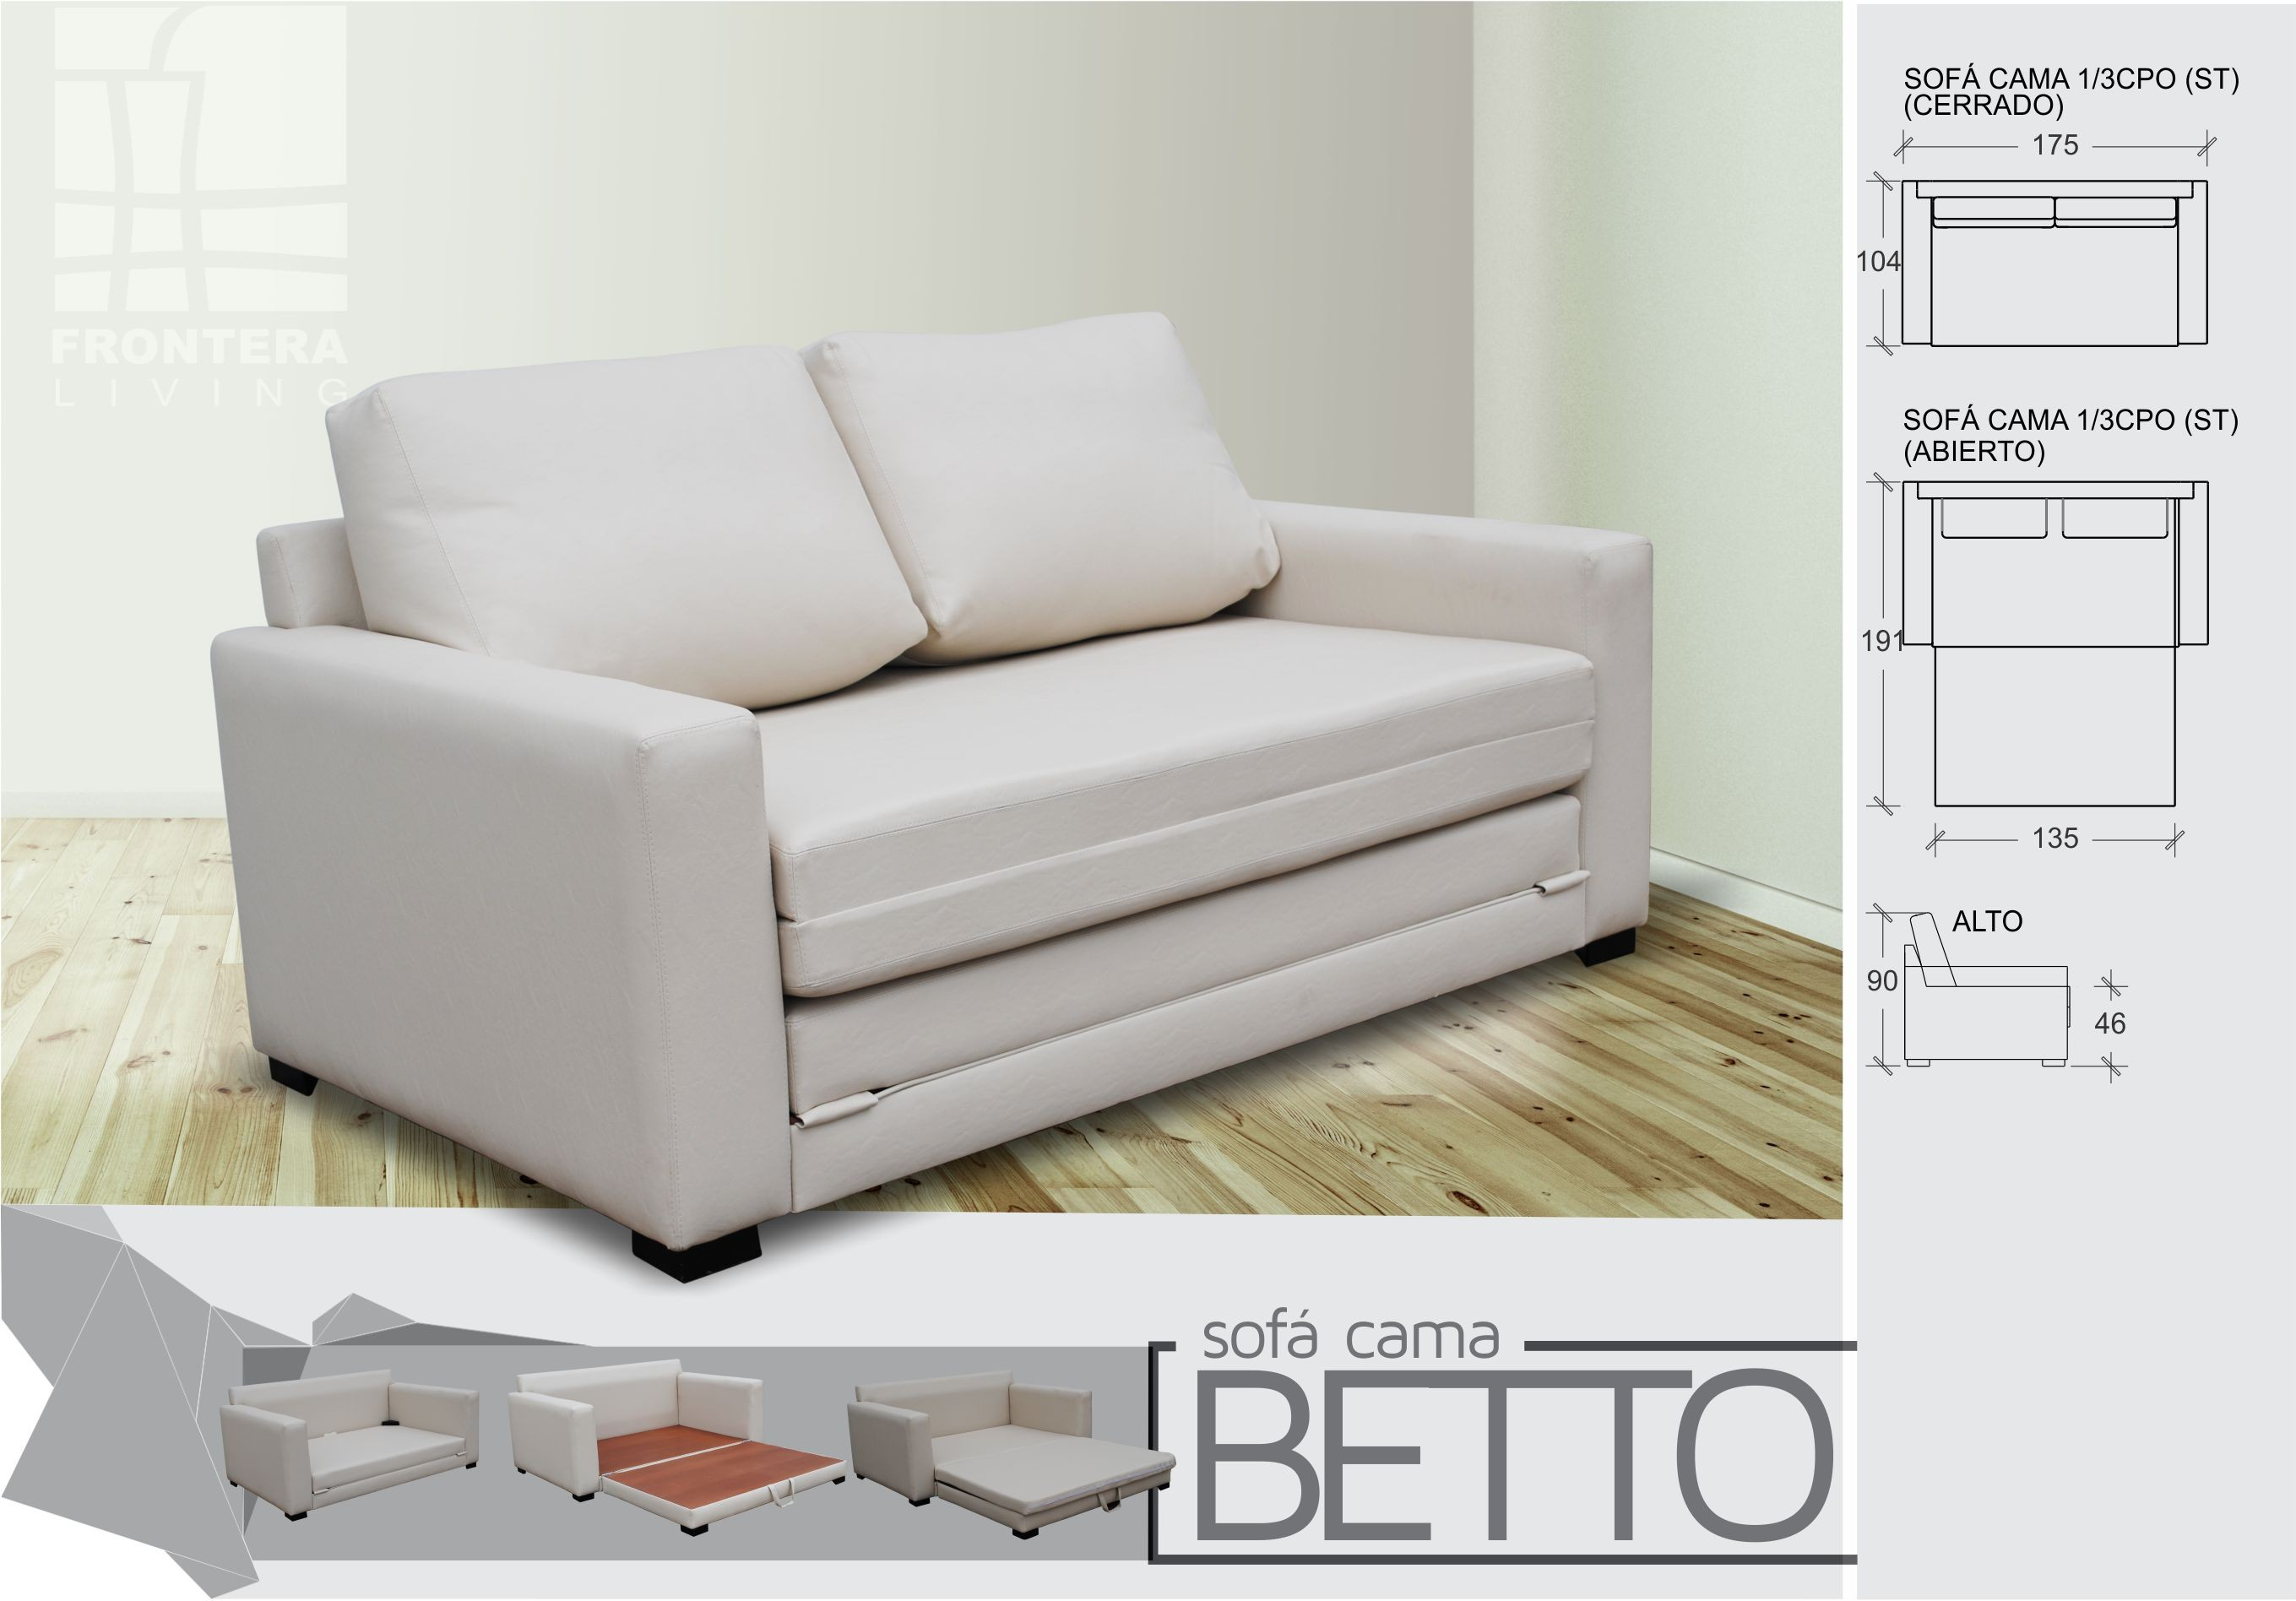 Fabrica de sofa cama 2 plazas en cordoba for Sofa ideal cordoba